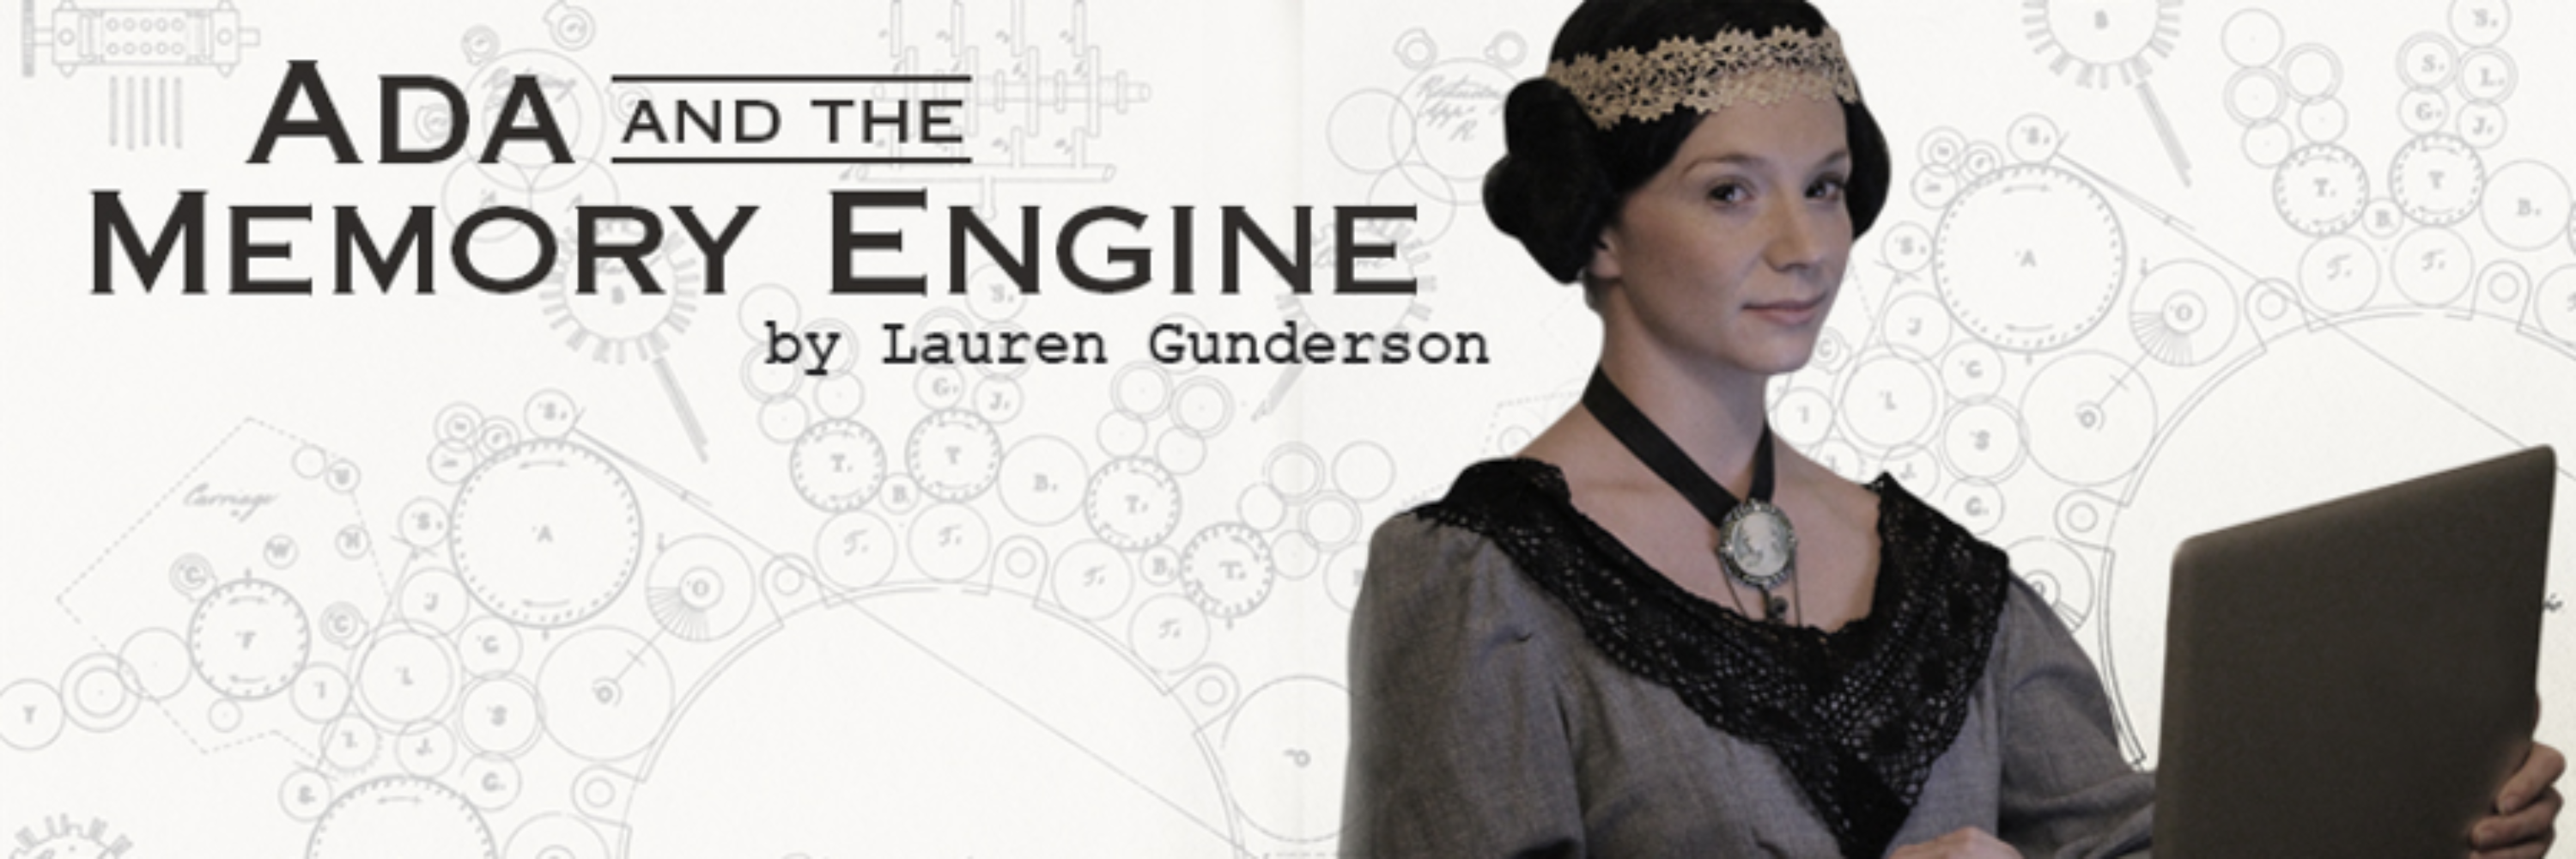 Ada Lovelace, Lauren Gunderson, Lord Byron, analytical engine, memory engine, computer history, retrotech, difference engine, STEAM